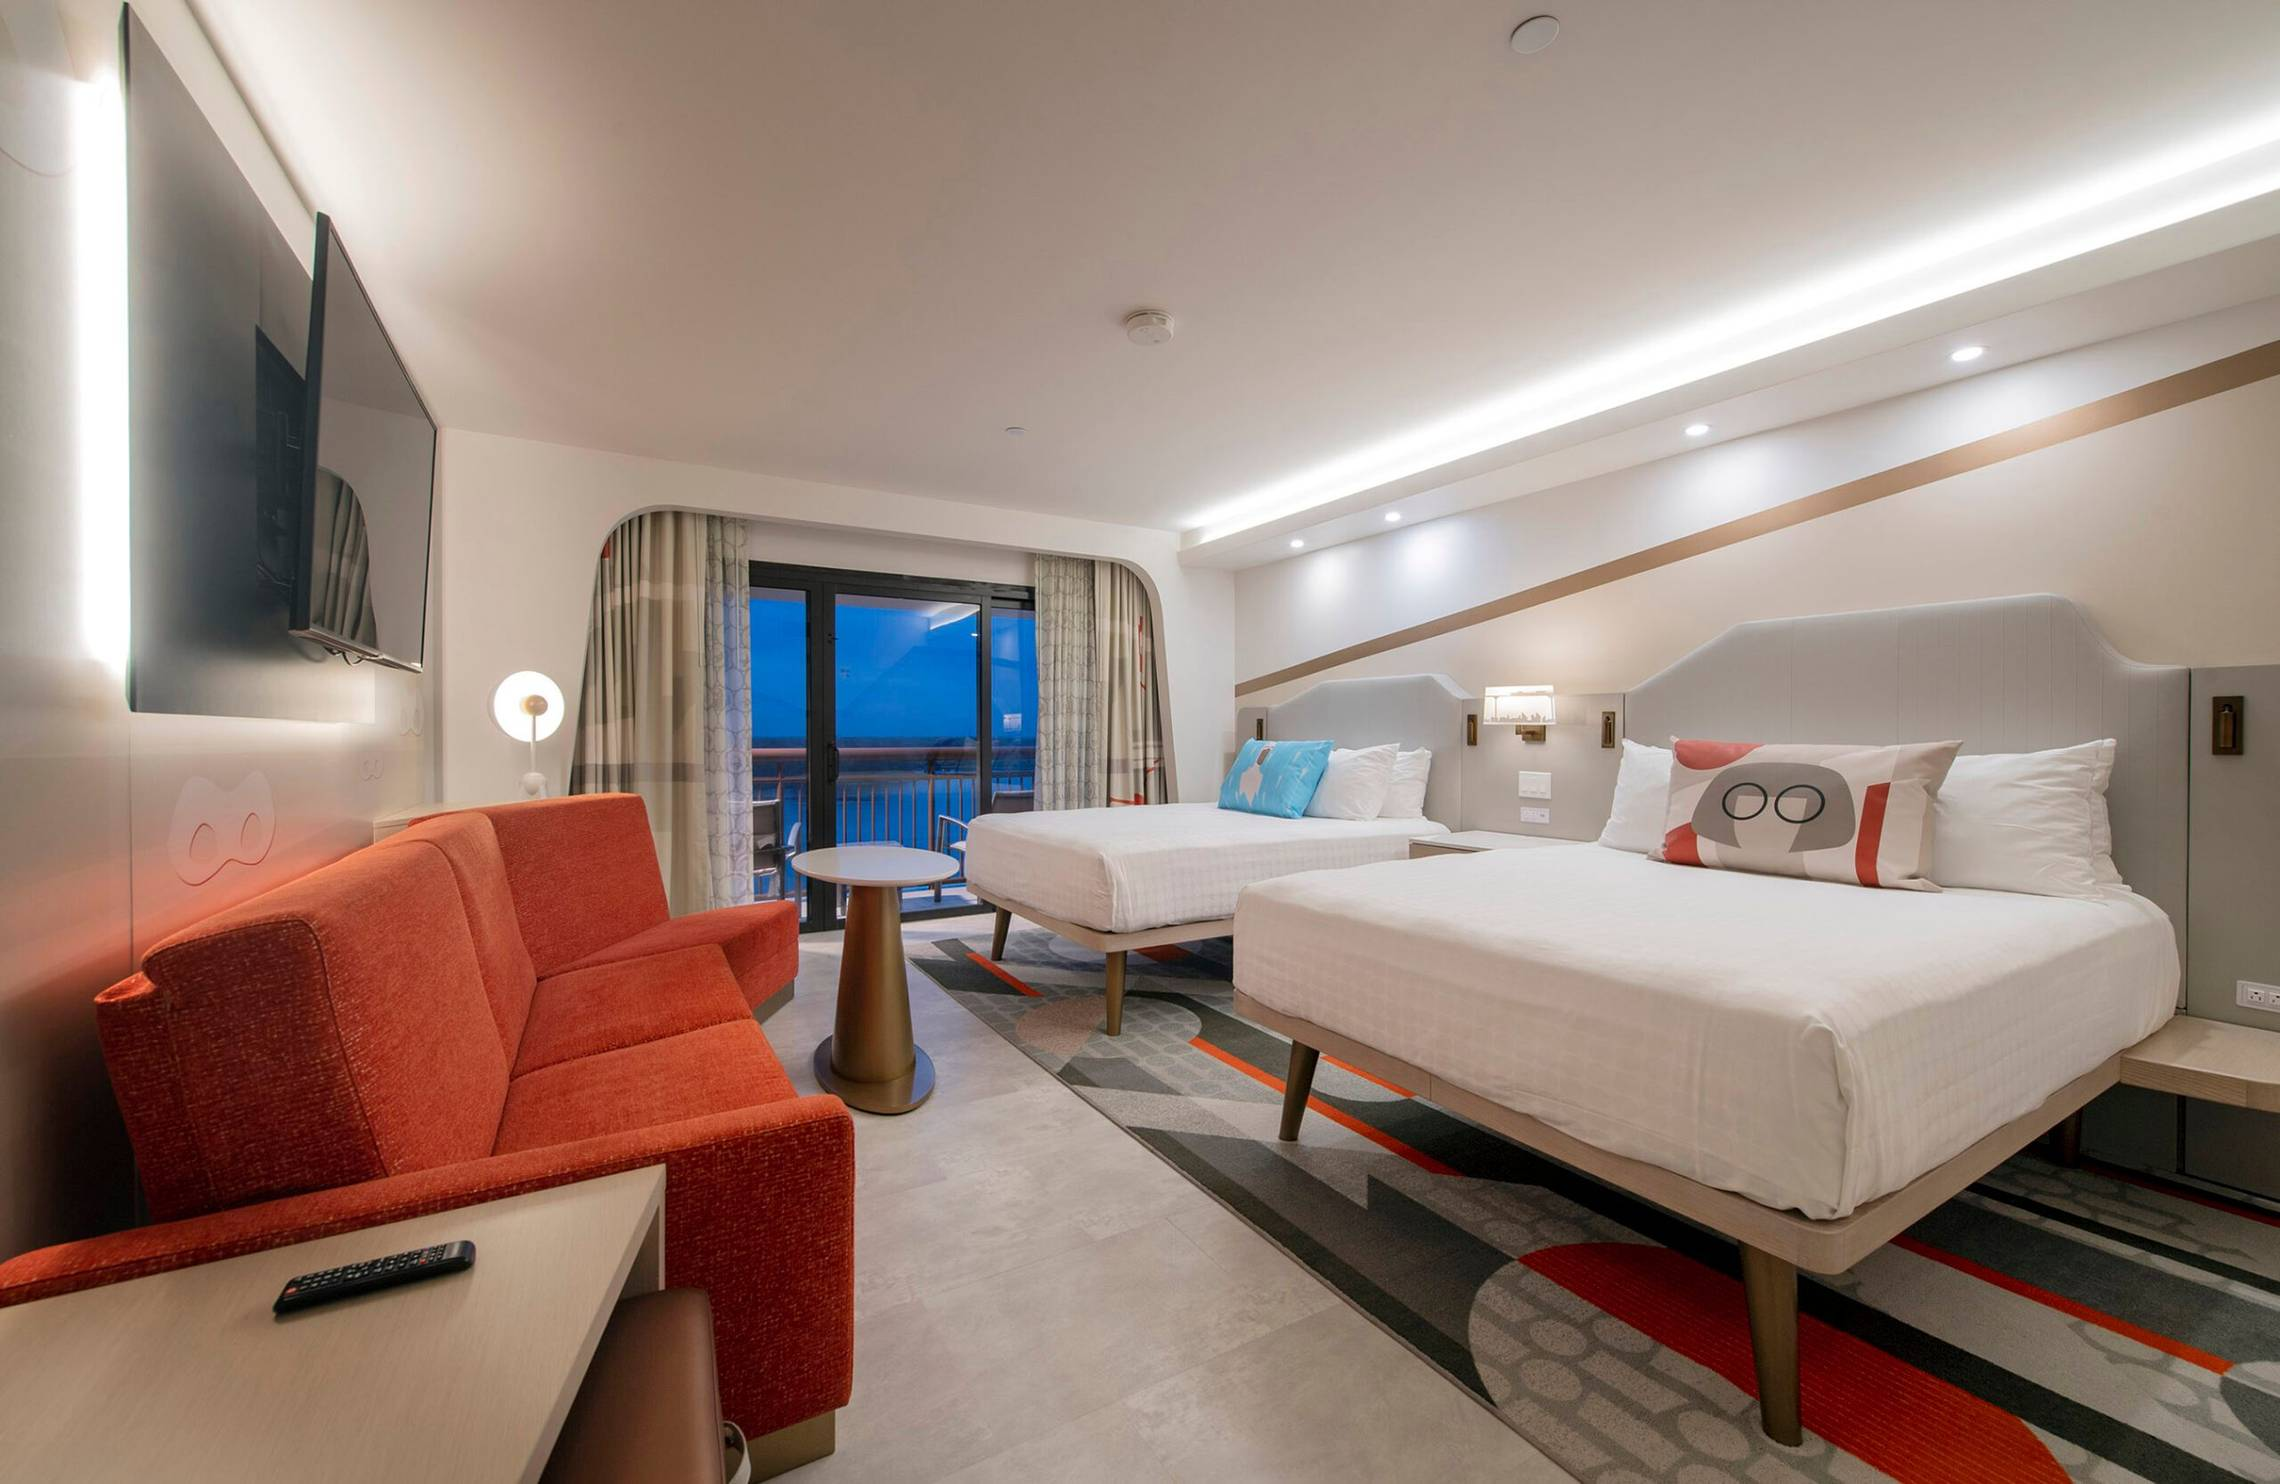 Inside the new-look 2021 Contemporary Resort rooms designs